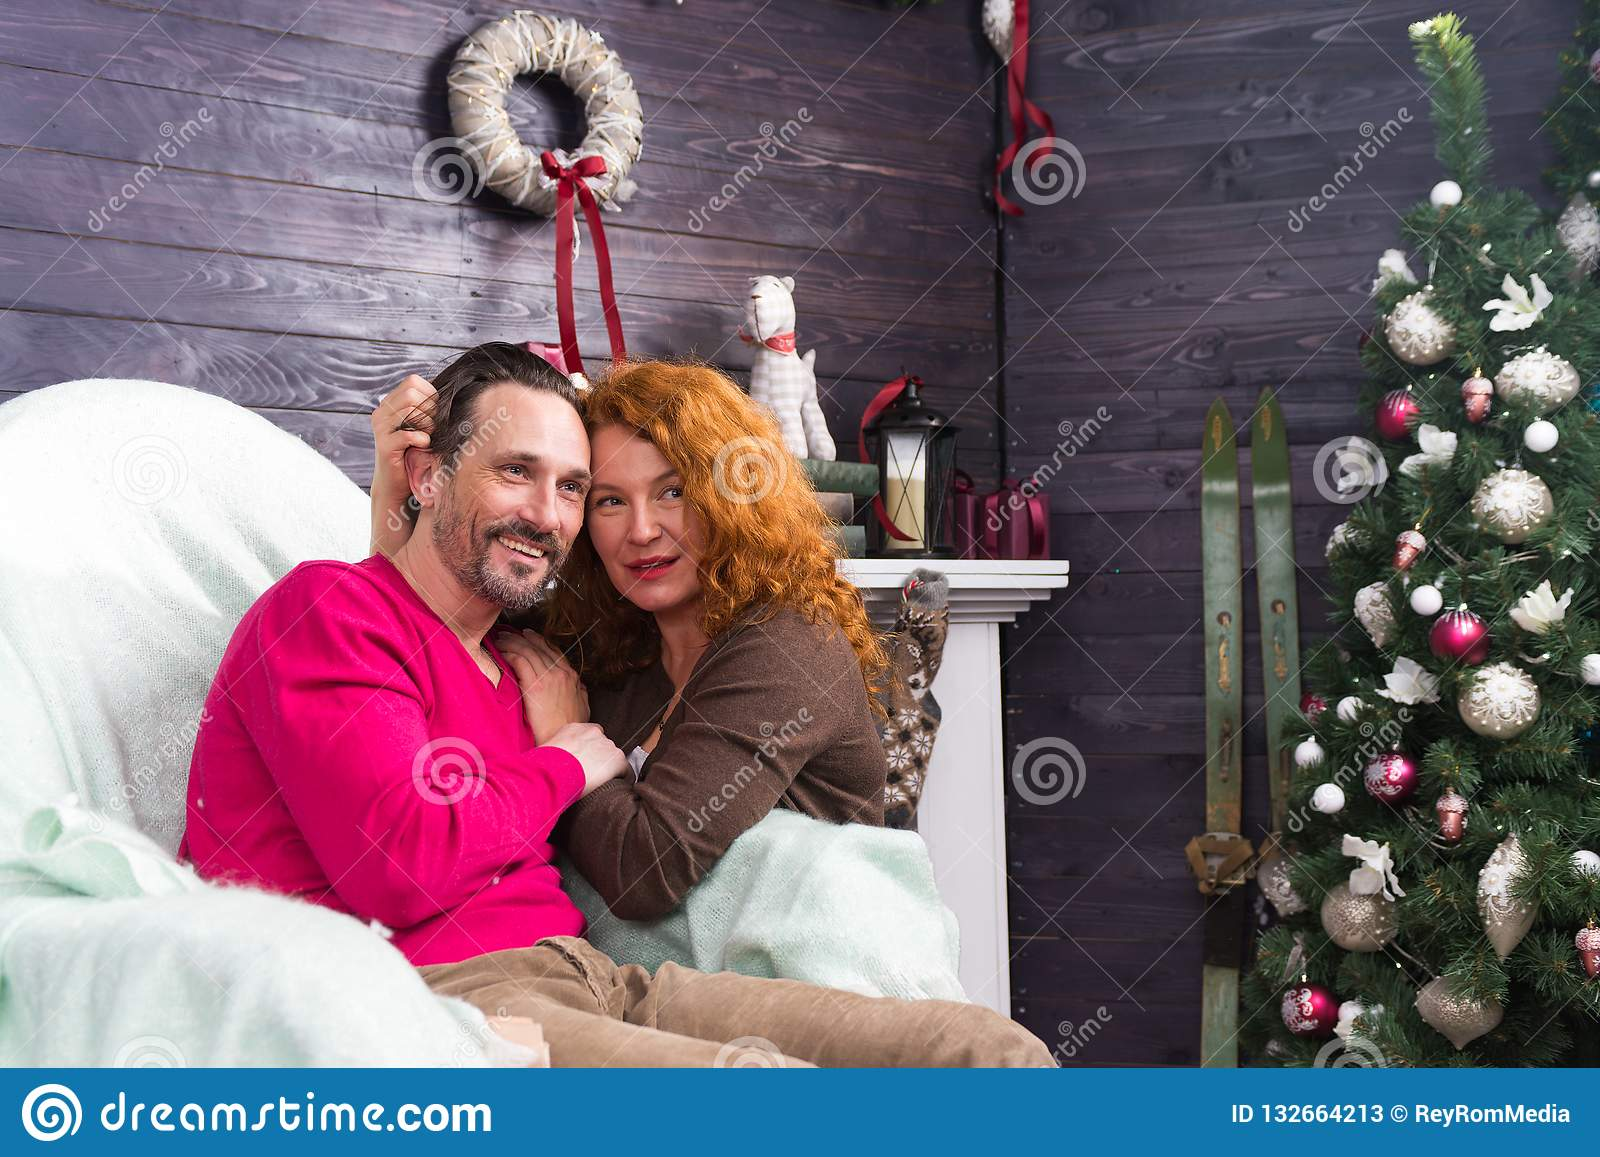 Relaxed couple smiling and looking into the distance during winter holidays